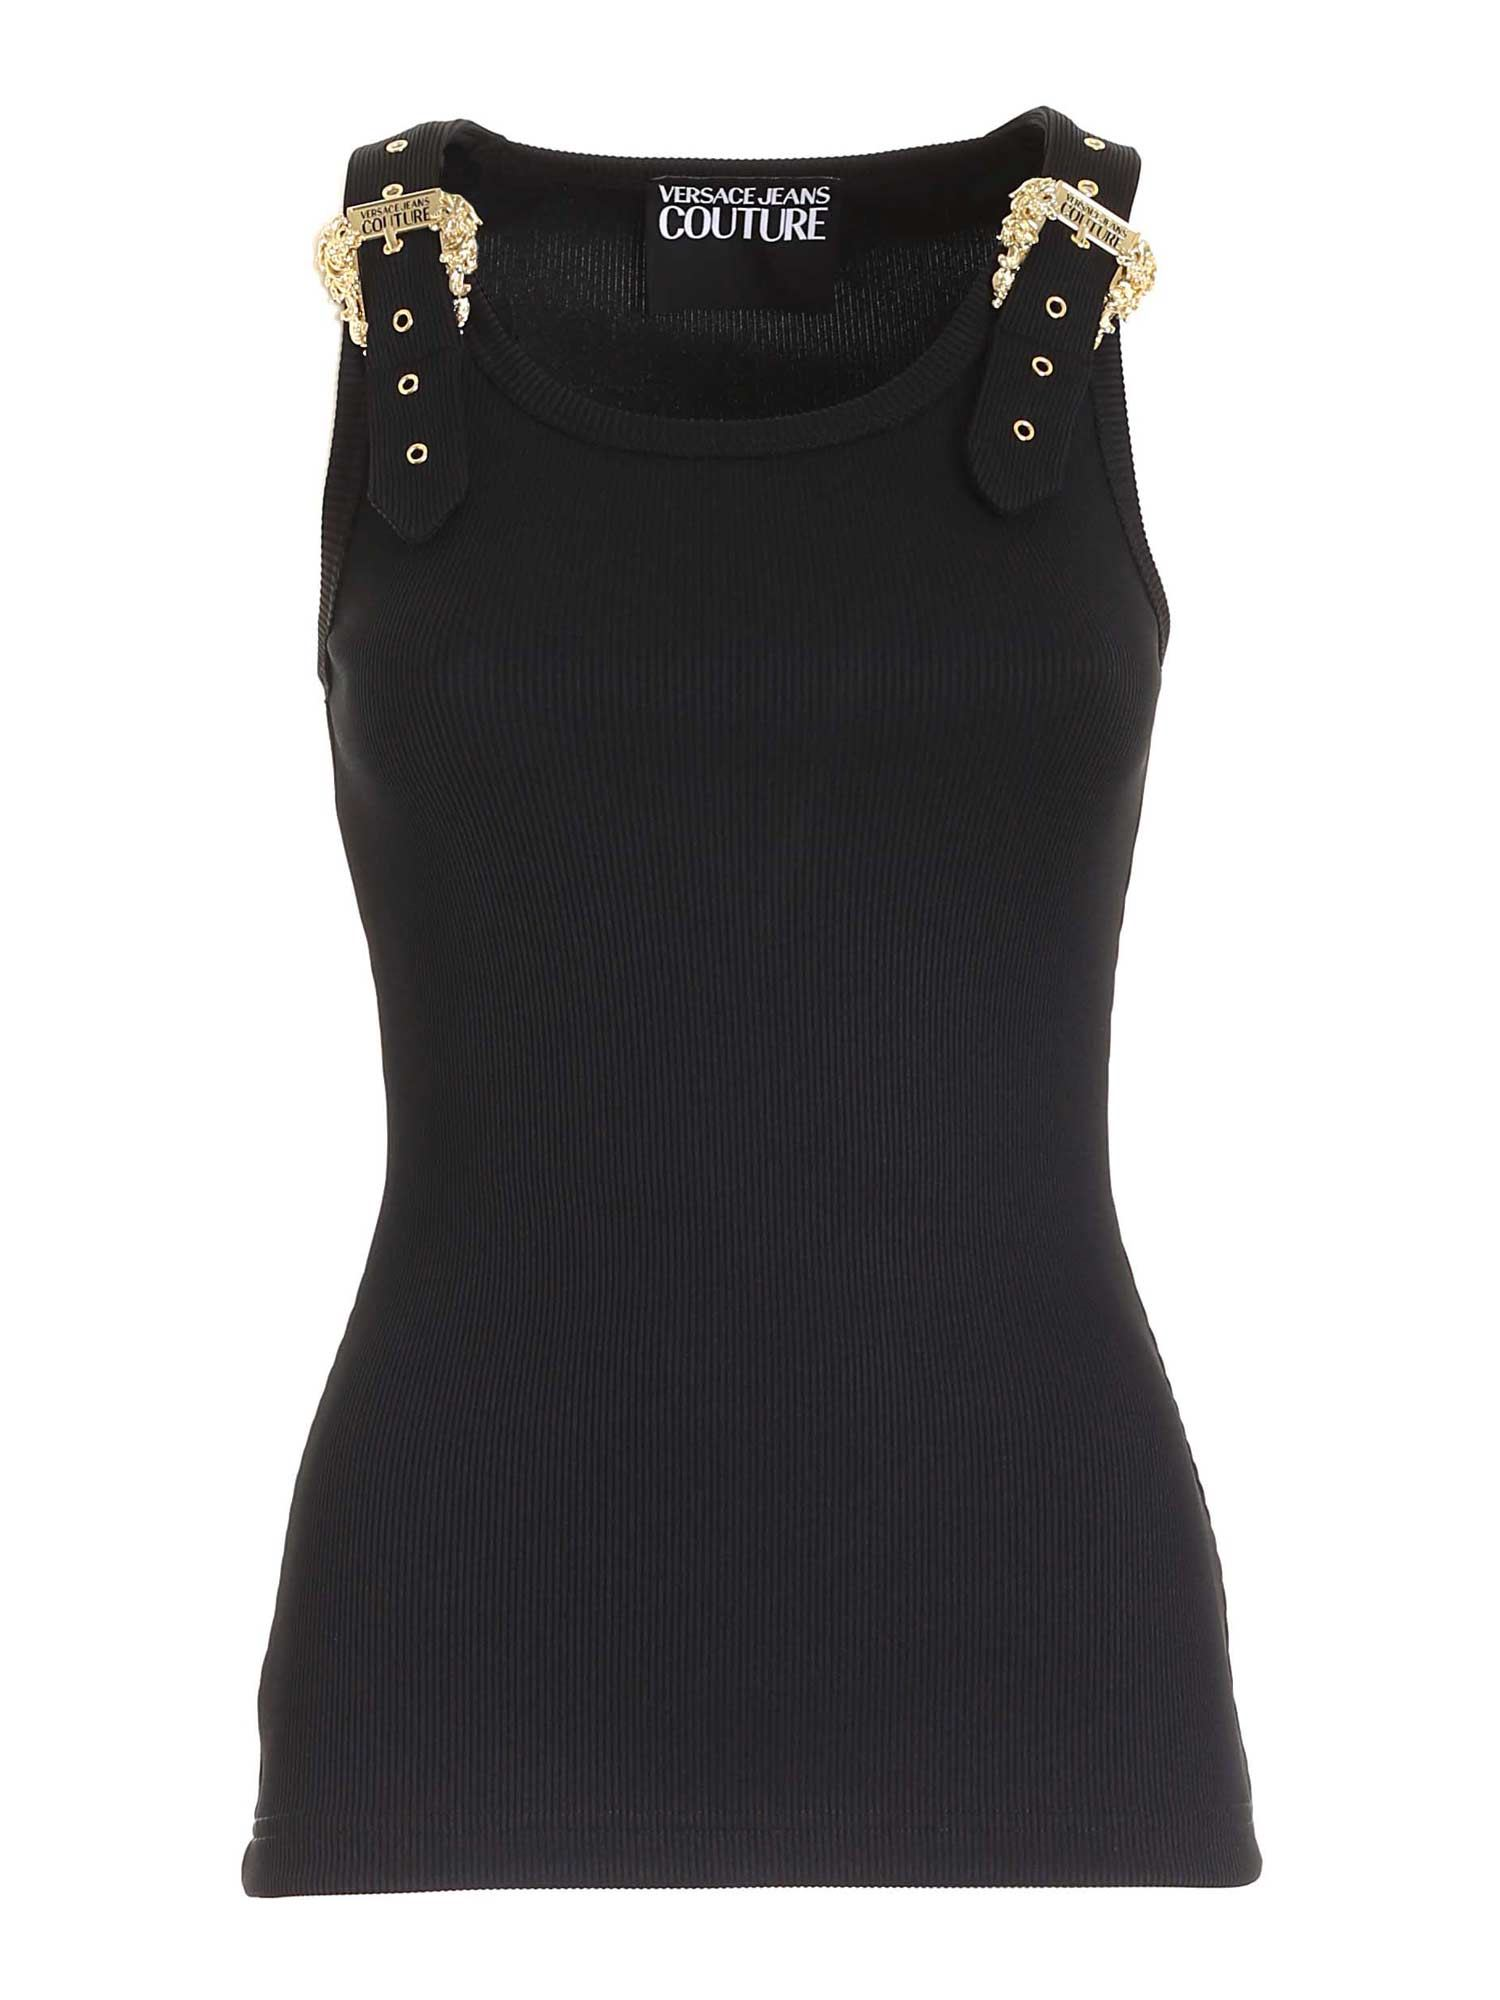 Versace Jeans Couture Tops BUCKLE TOP IN BLACK